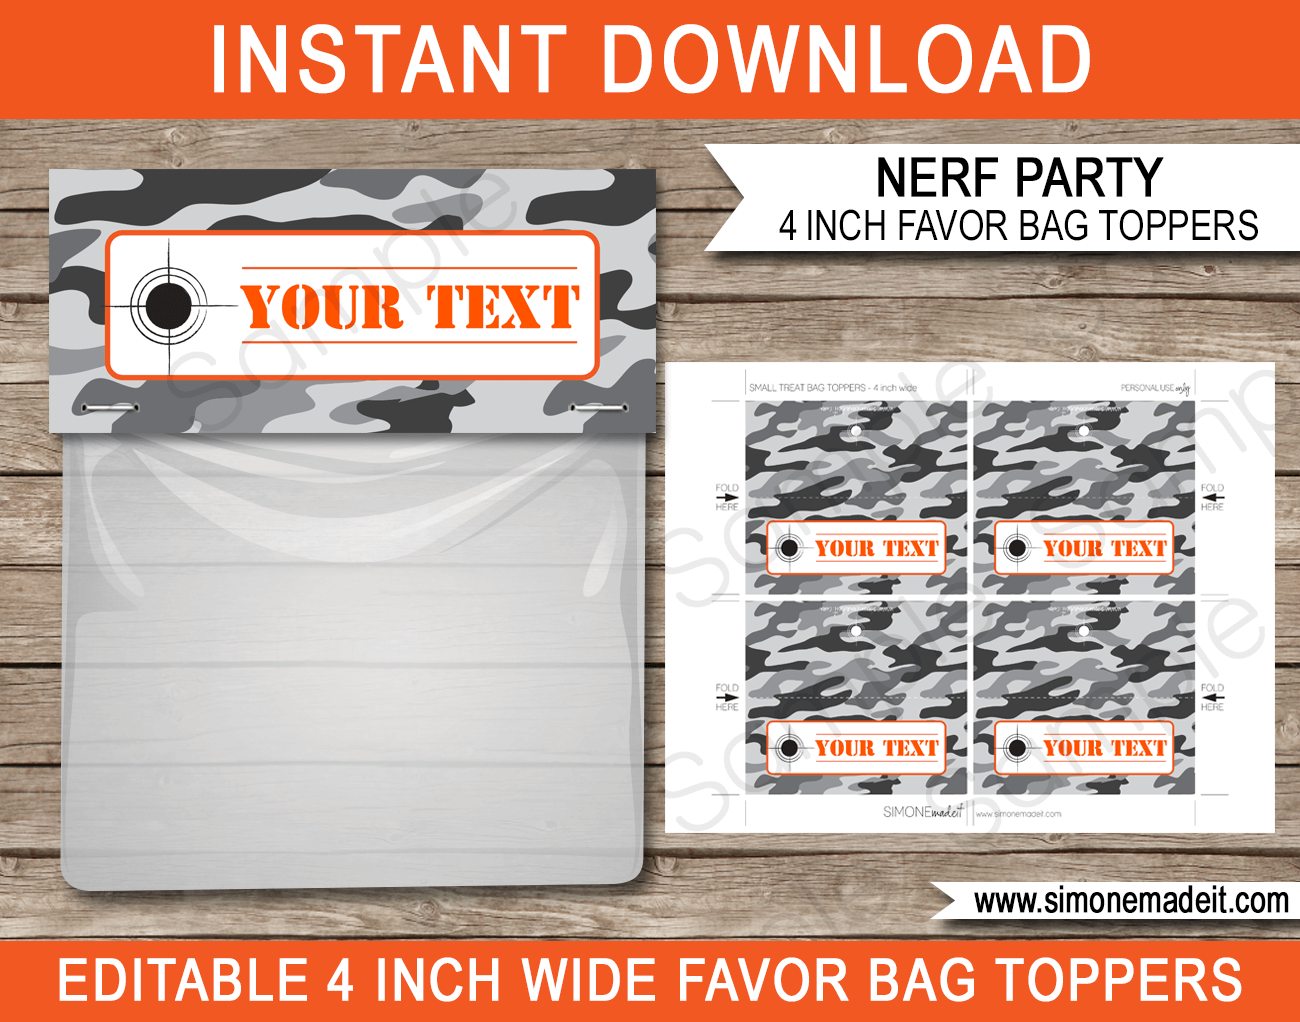 Nerf Party Favor Bag Toppers | Nerf Birthday Party Favors | Editable DIY Template | $3.00 INSTANT DOWNLOAD via SIMONEmadeit.com